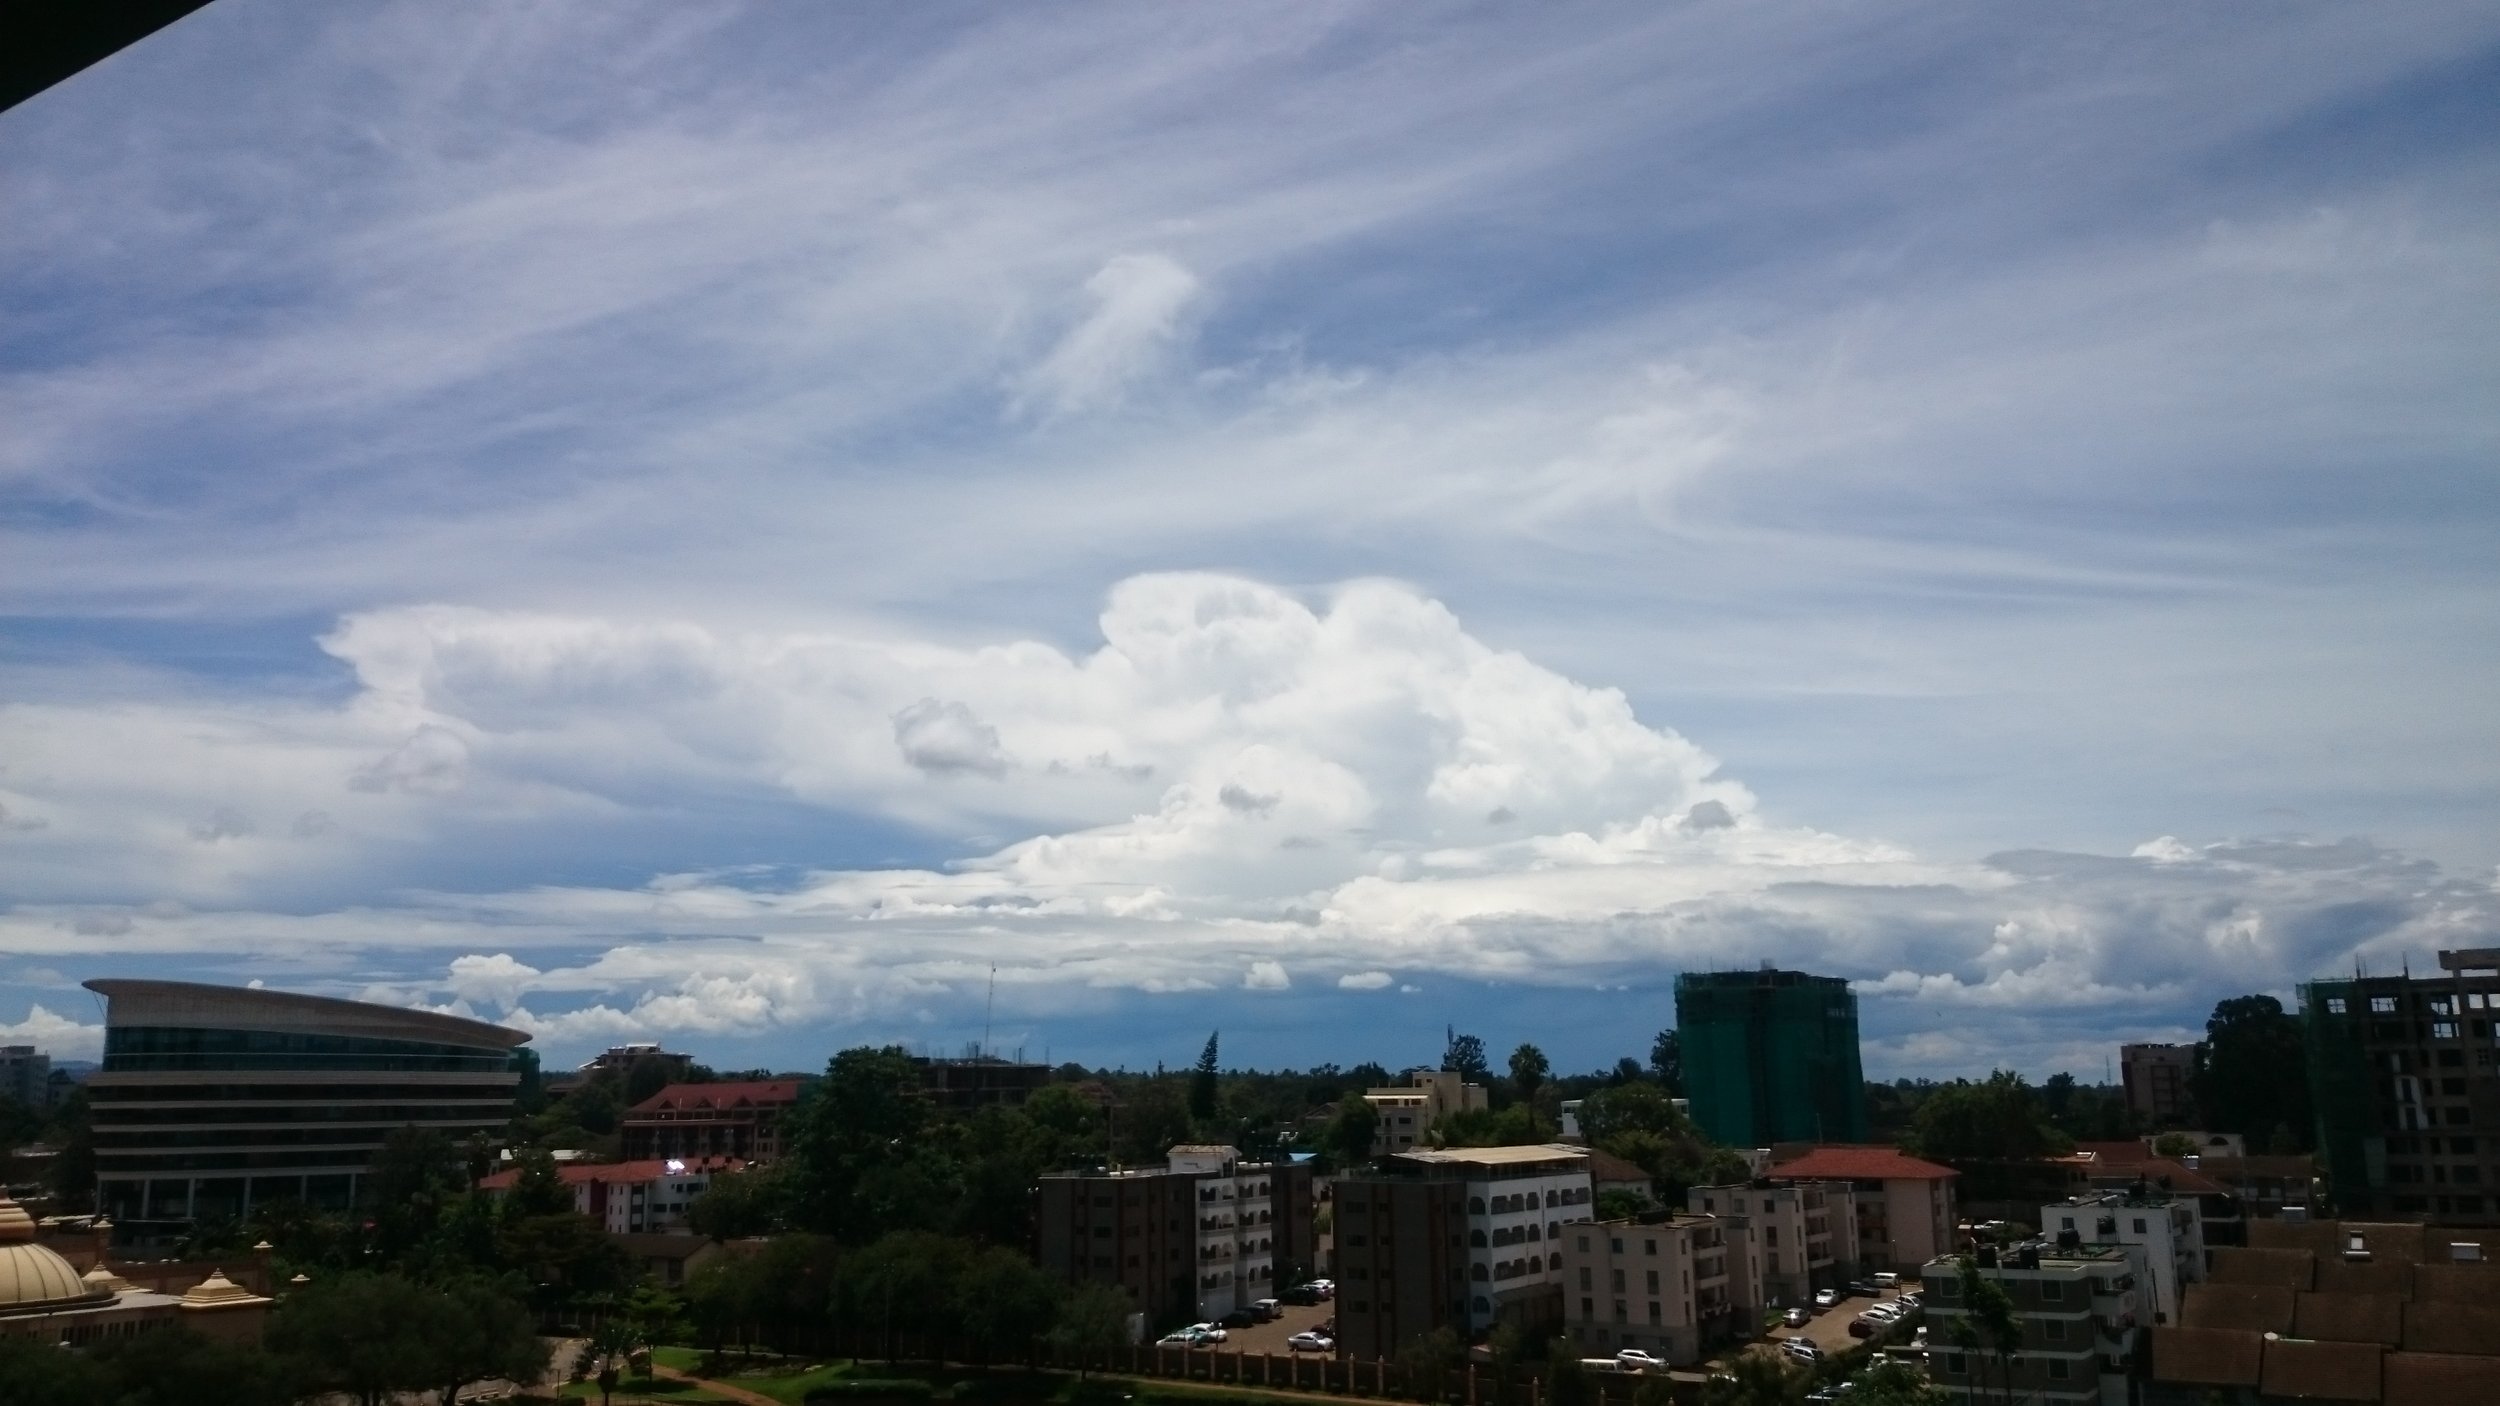 Rain clouds as seen from Westlands, Nairobi